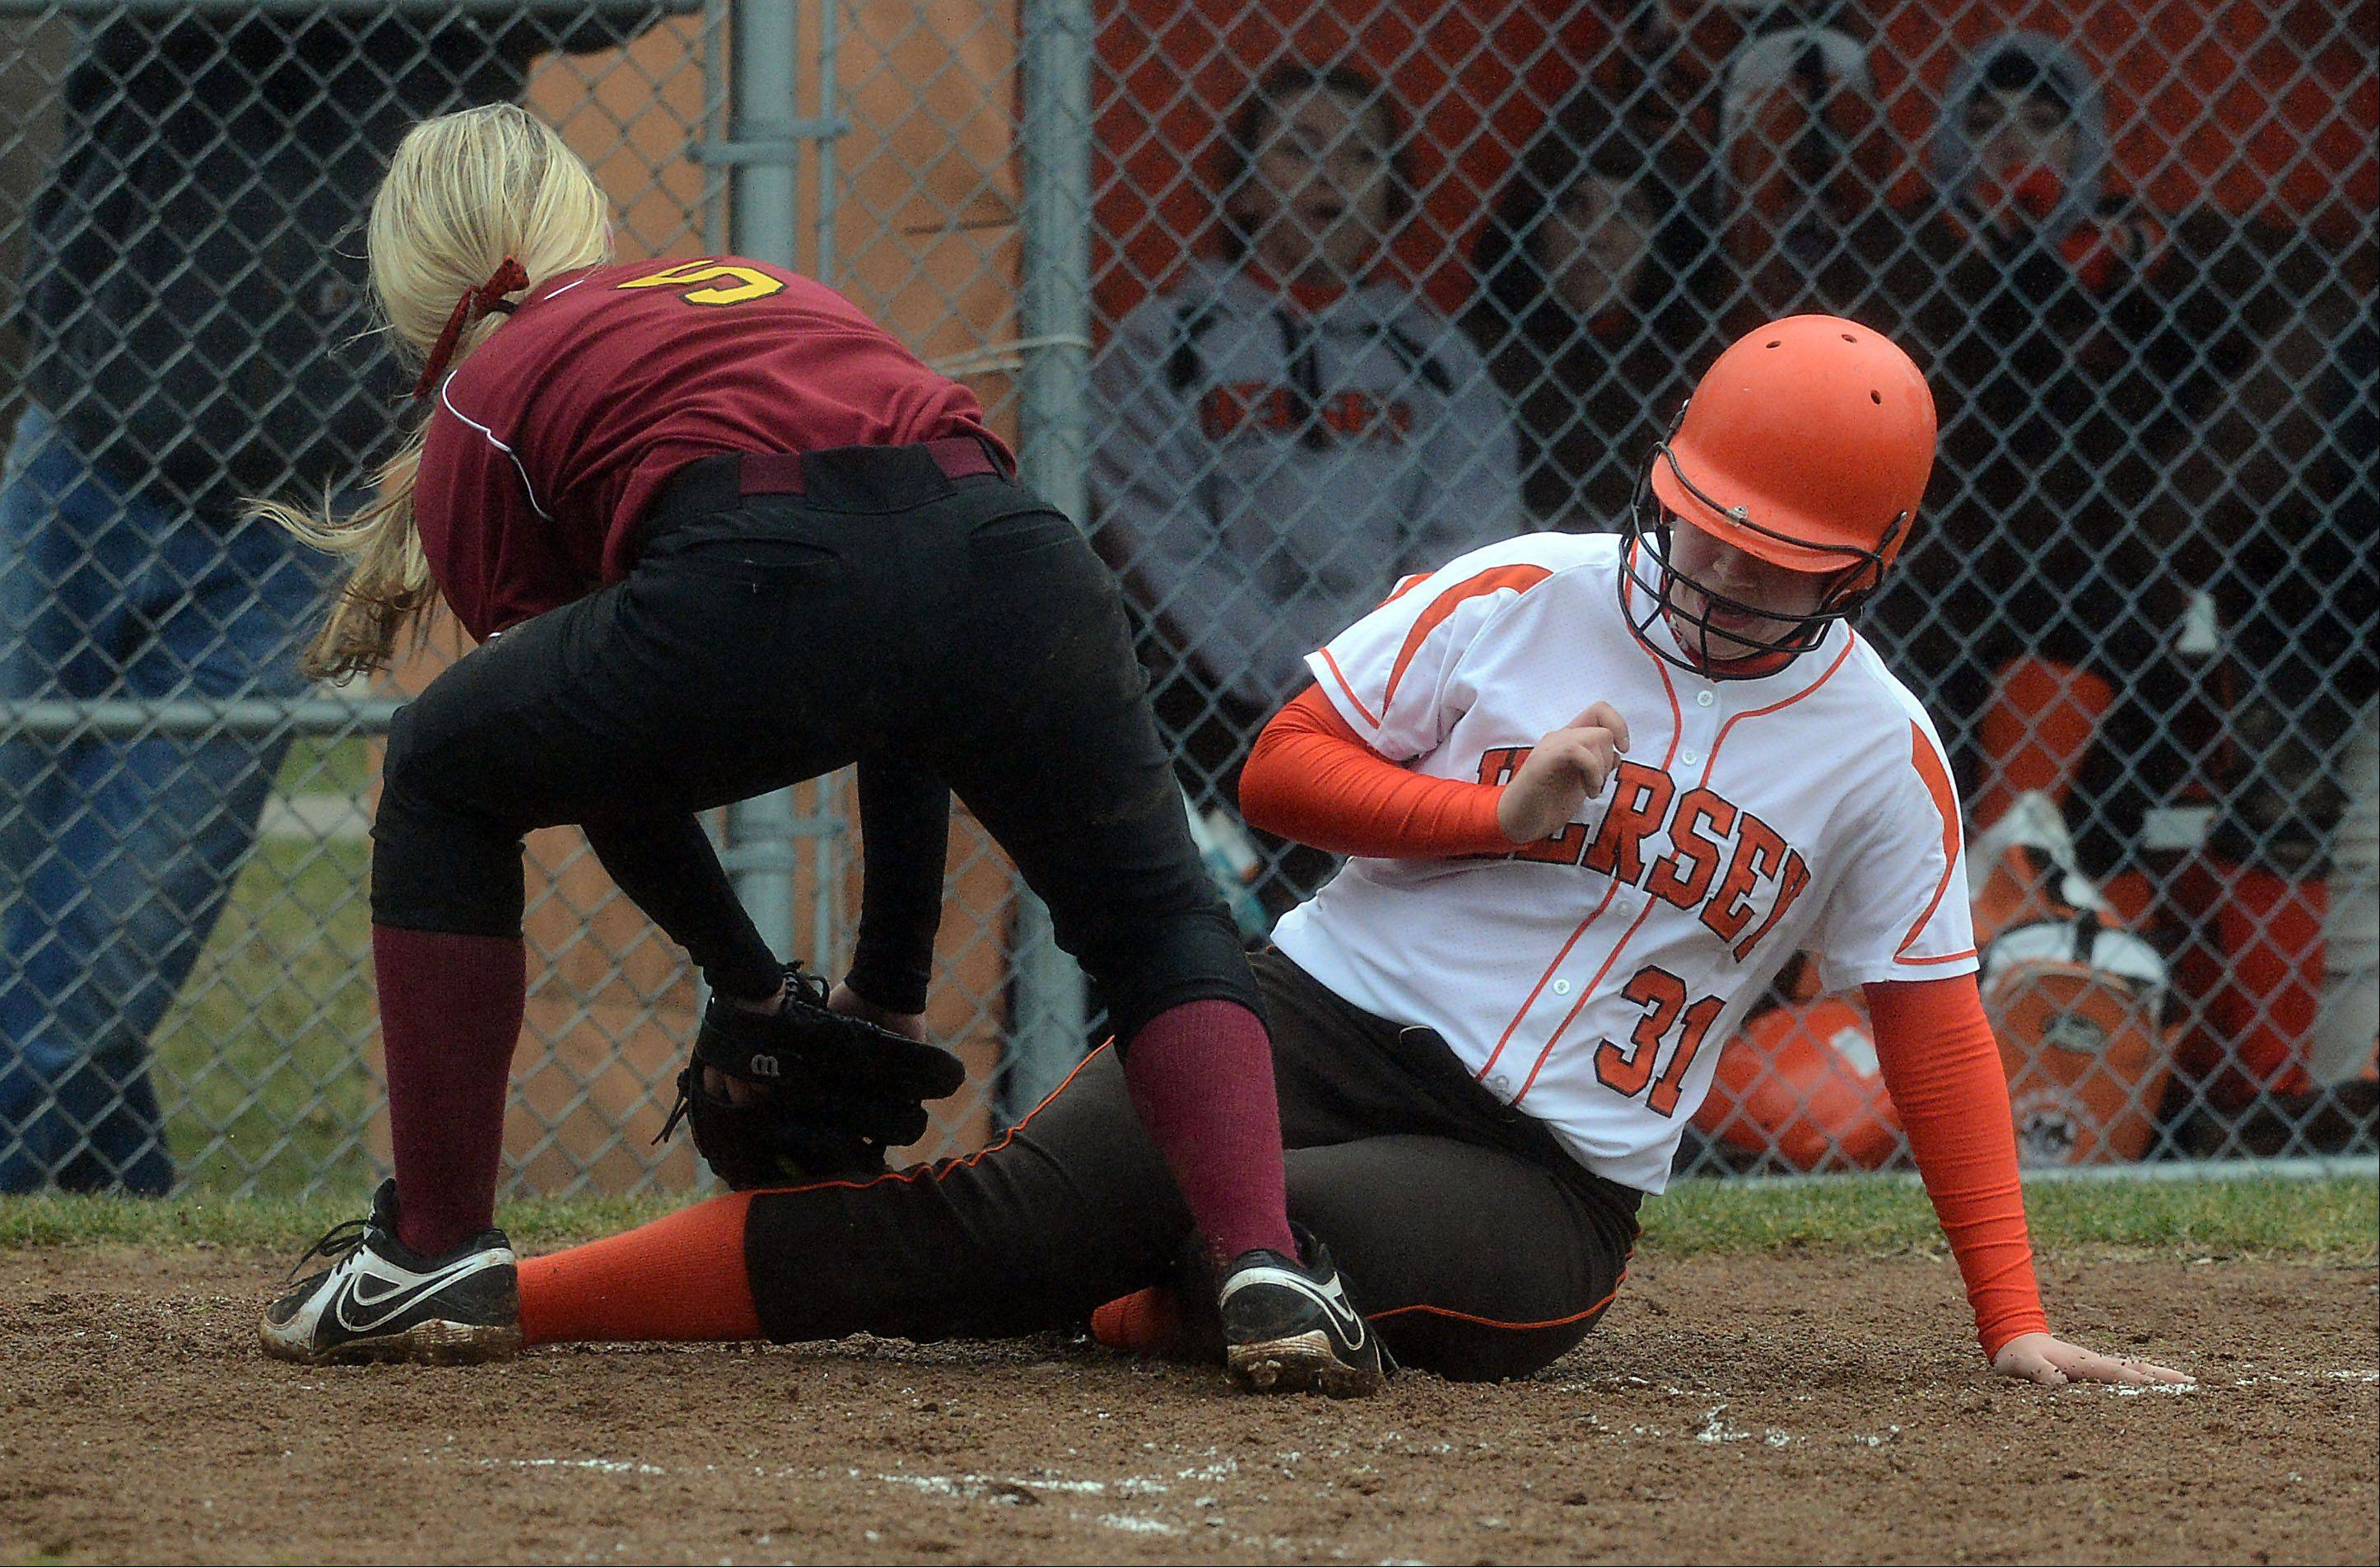 Schaumburg's Shannon Felde puts a late tag on Kelsey Panfil at the plate for Hersey's only run, which scored after a wild pitch in the third inning of a 13-1 Saxons victory at Hersey on Friday.